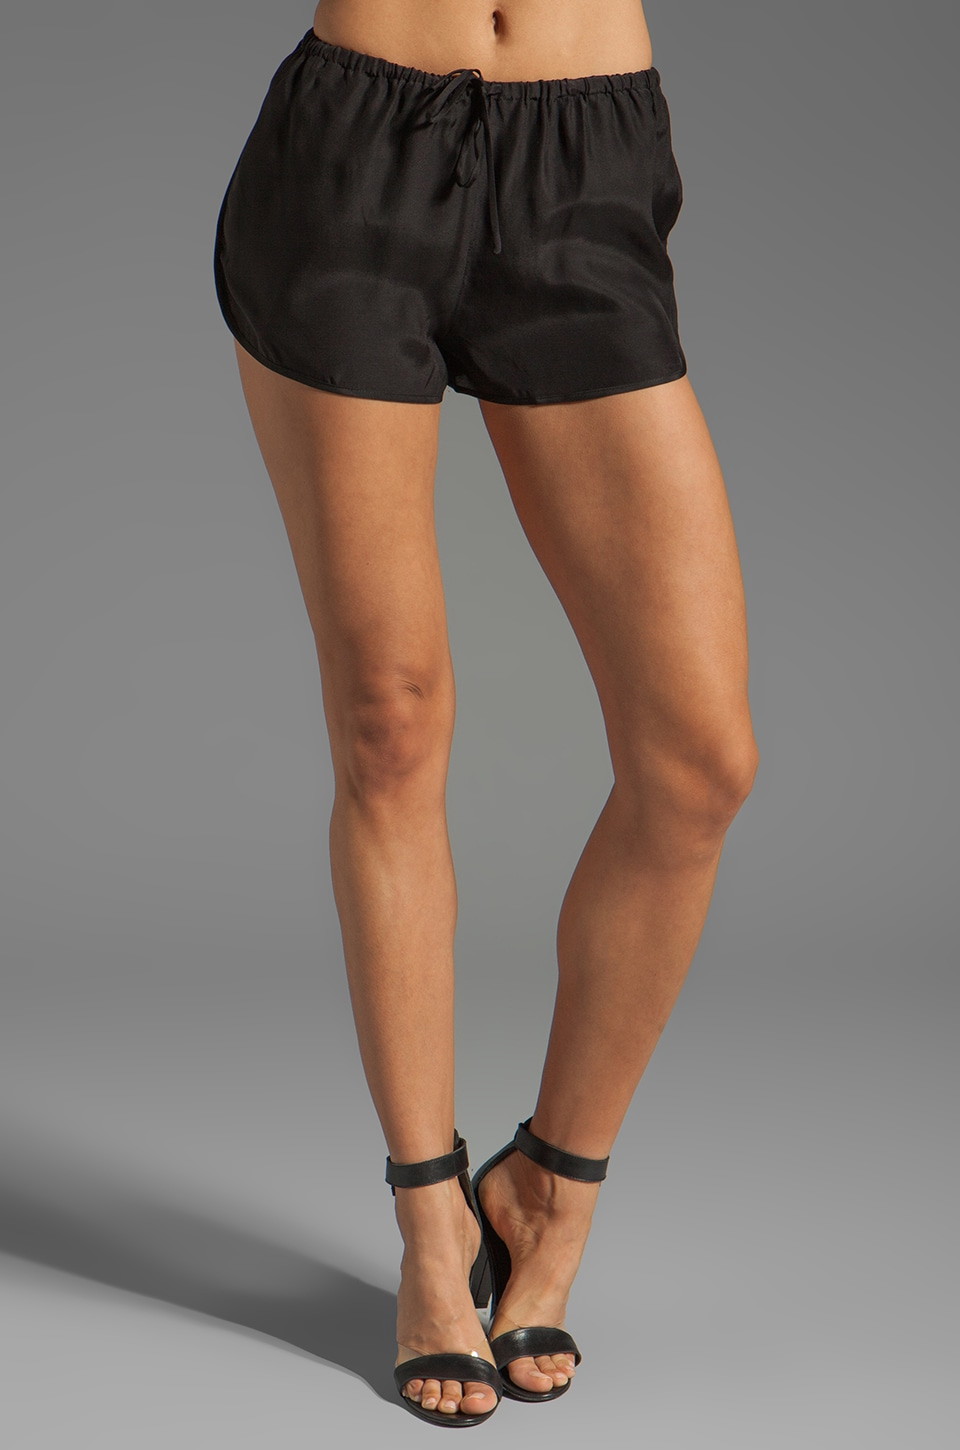 BLAQUE LABEL Silk Shorts in Black